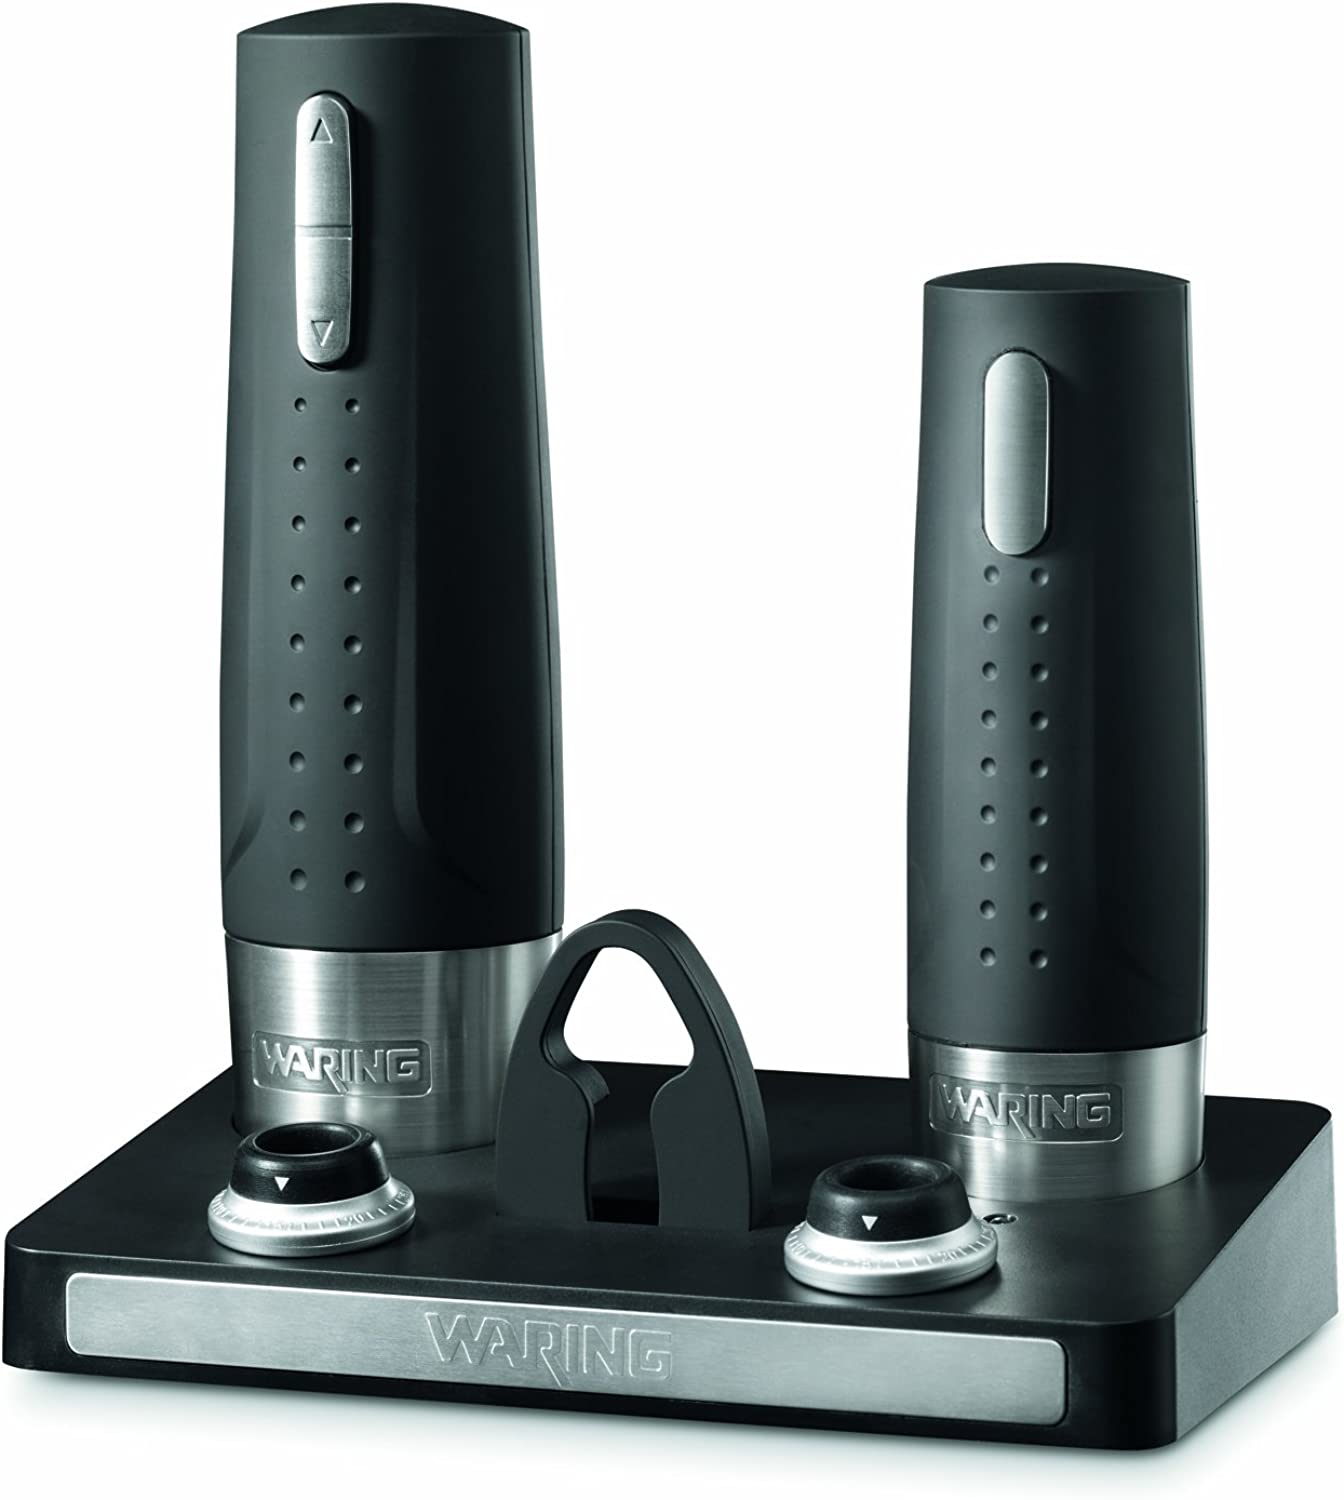 Waring WC400 Professional Wine Center